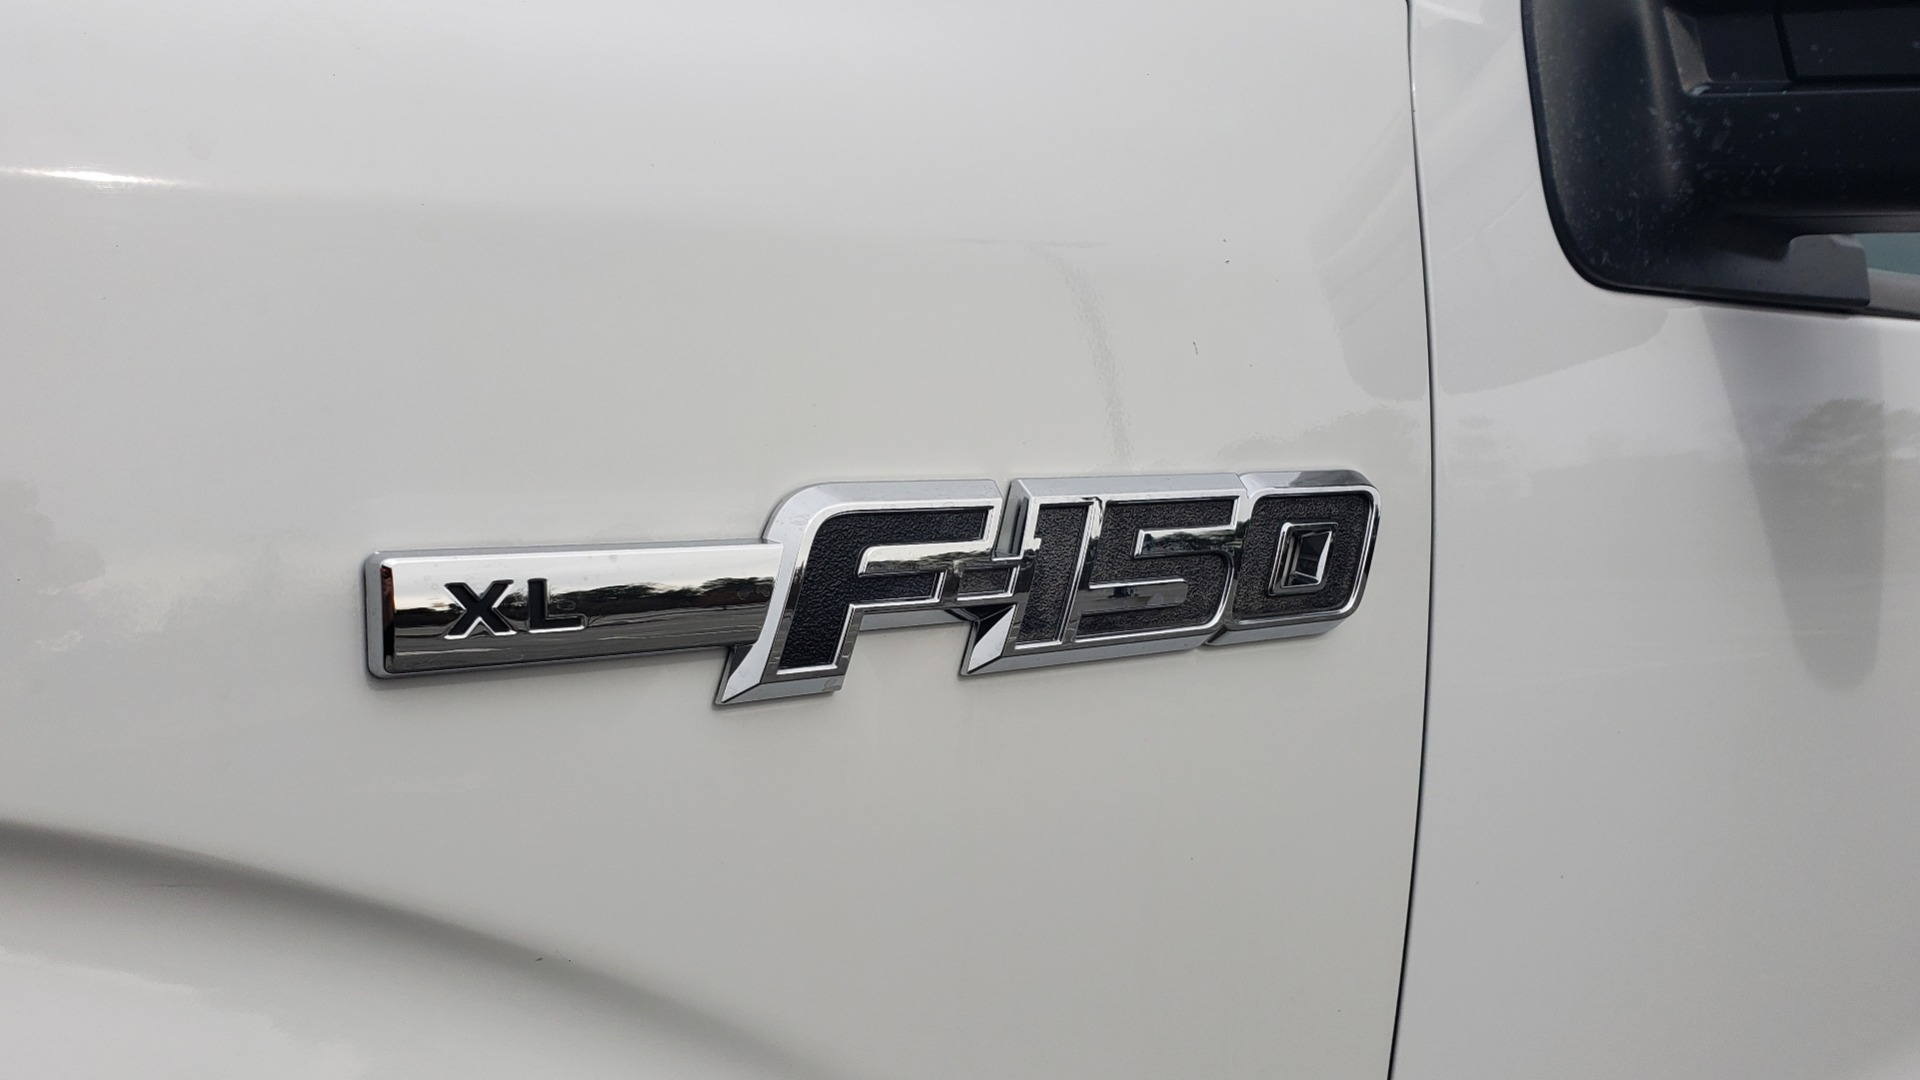 Used 2014 Ford F-150 XL 4X2 REGULAR CAB / 3.7L V6 / 6-SPD AUTO / CRUISE CONTROL for sale $11,995 at Formula Imports in Charlotte NC 28227 11